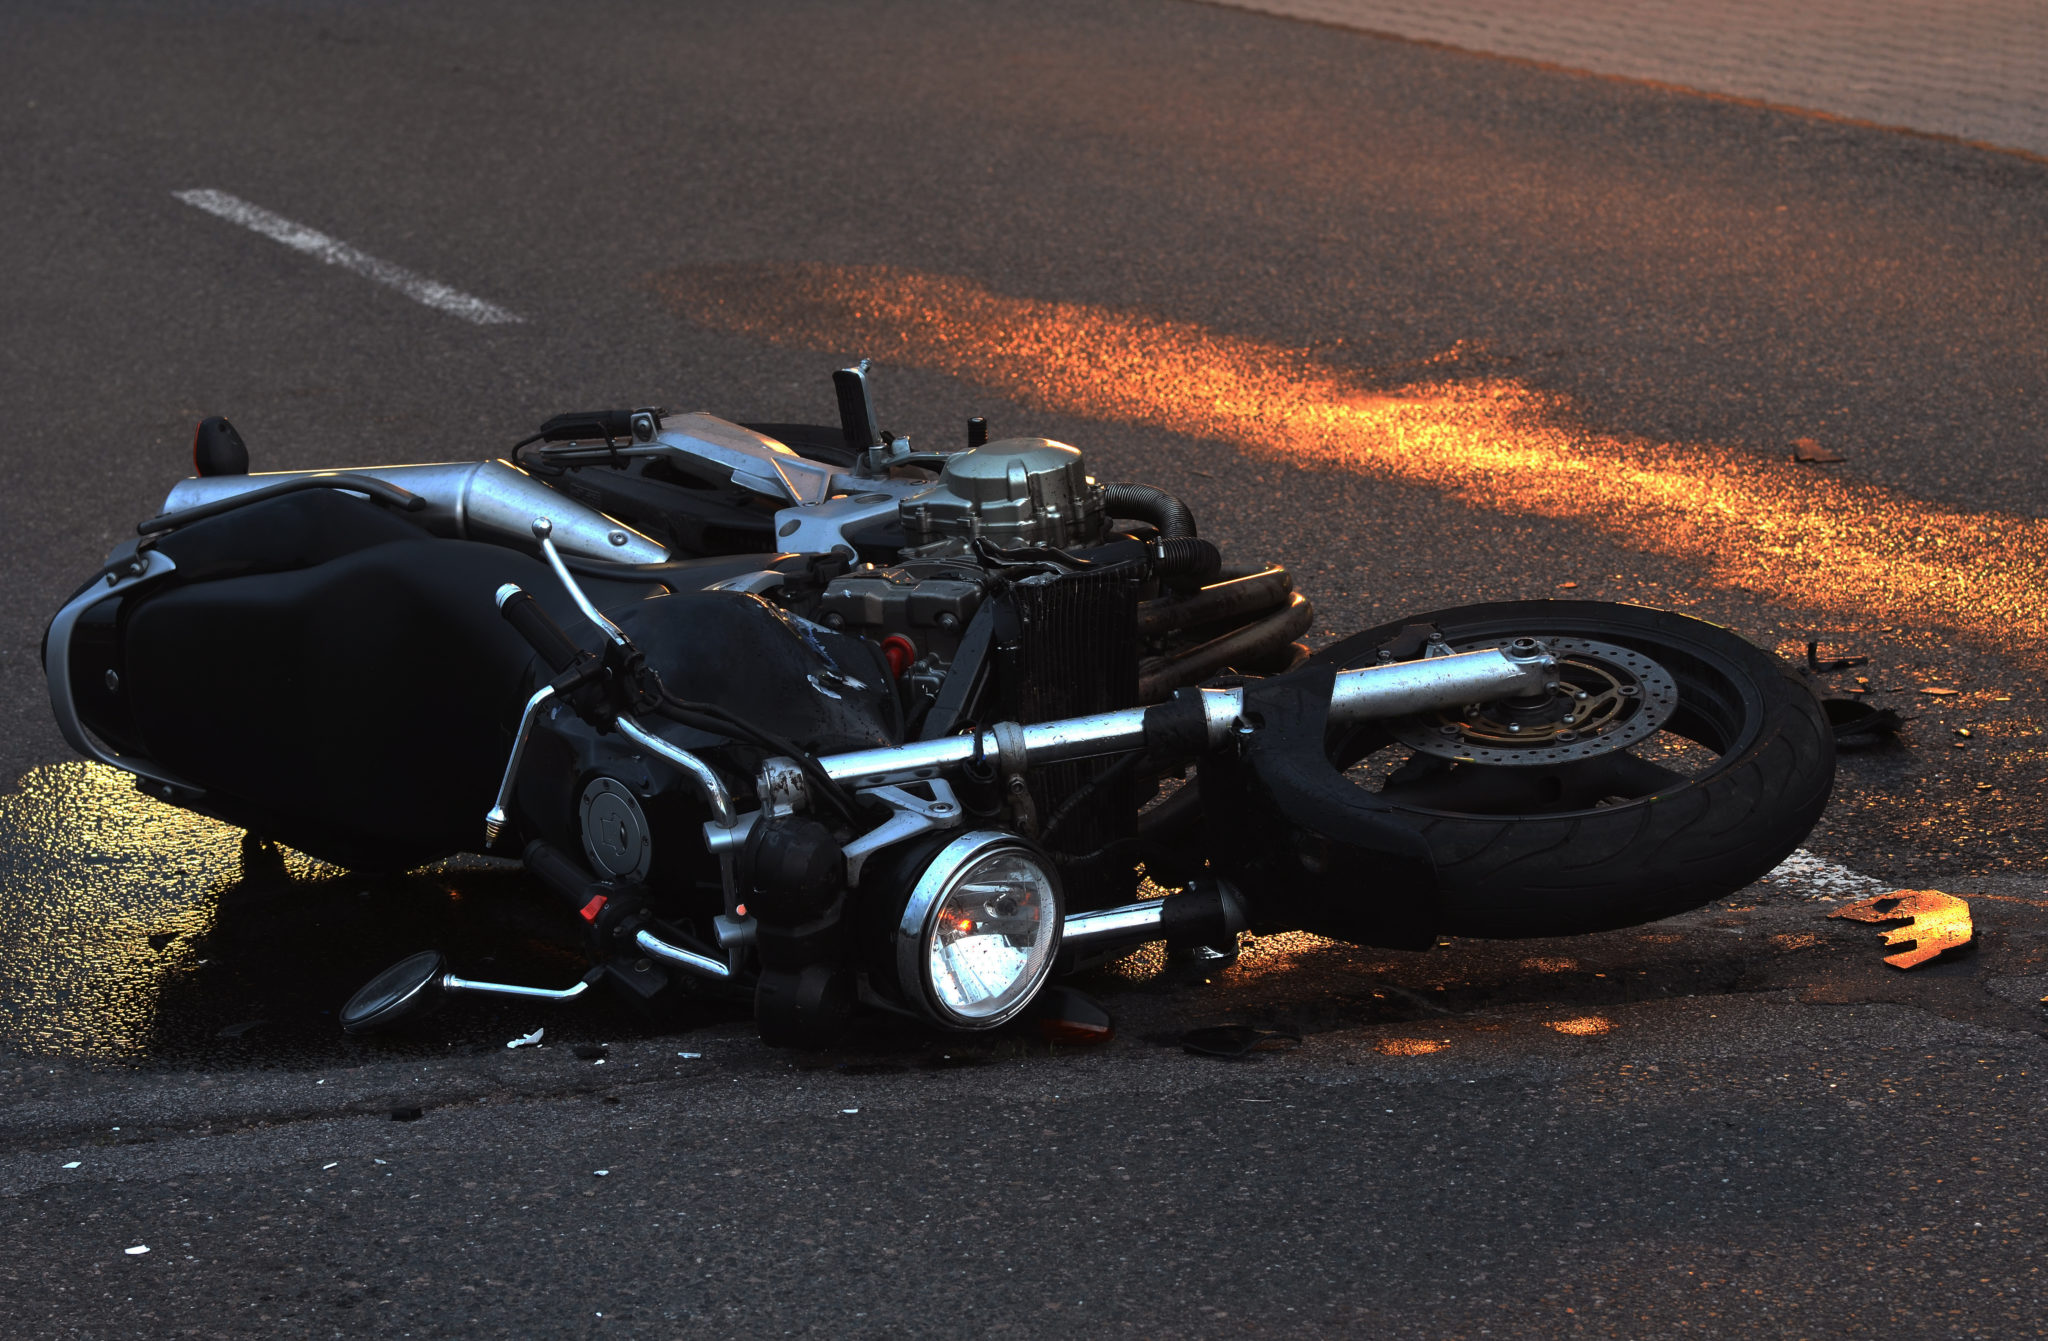 Legal battle finally proves fault of car driver in accident and results in £520,000 compensation for motorcyclist left with brain injury